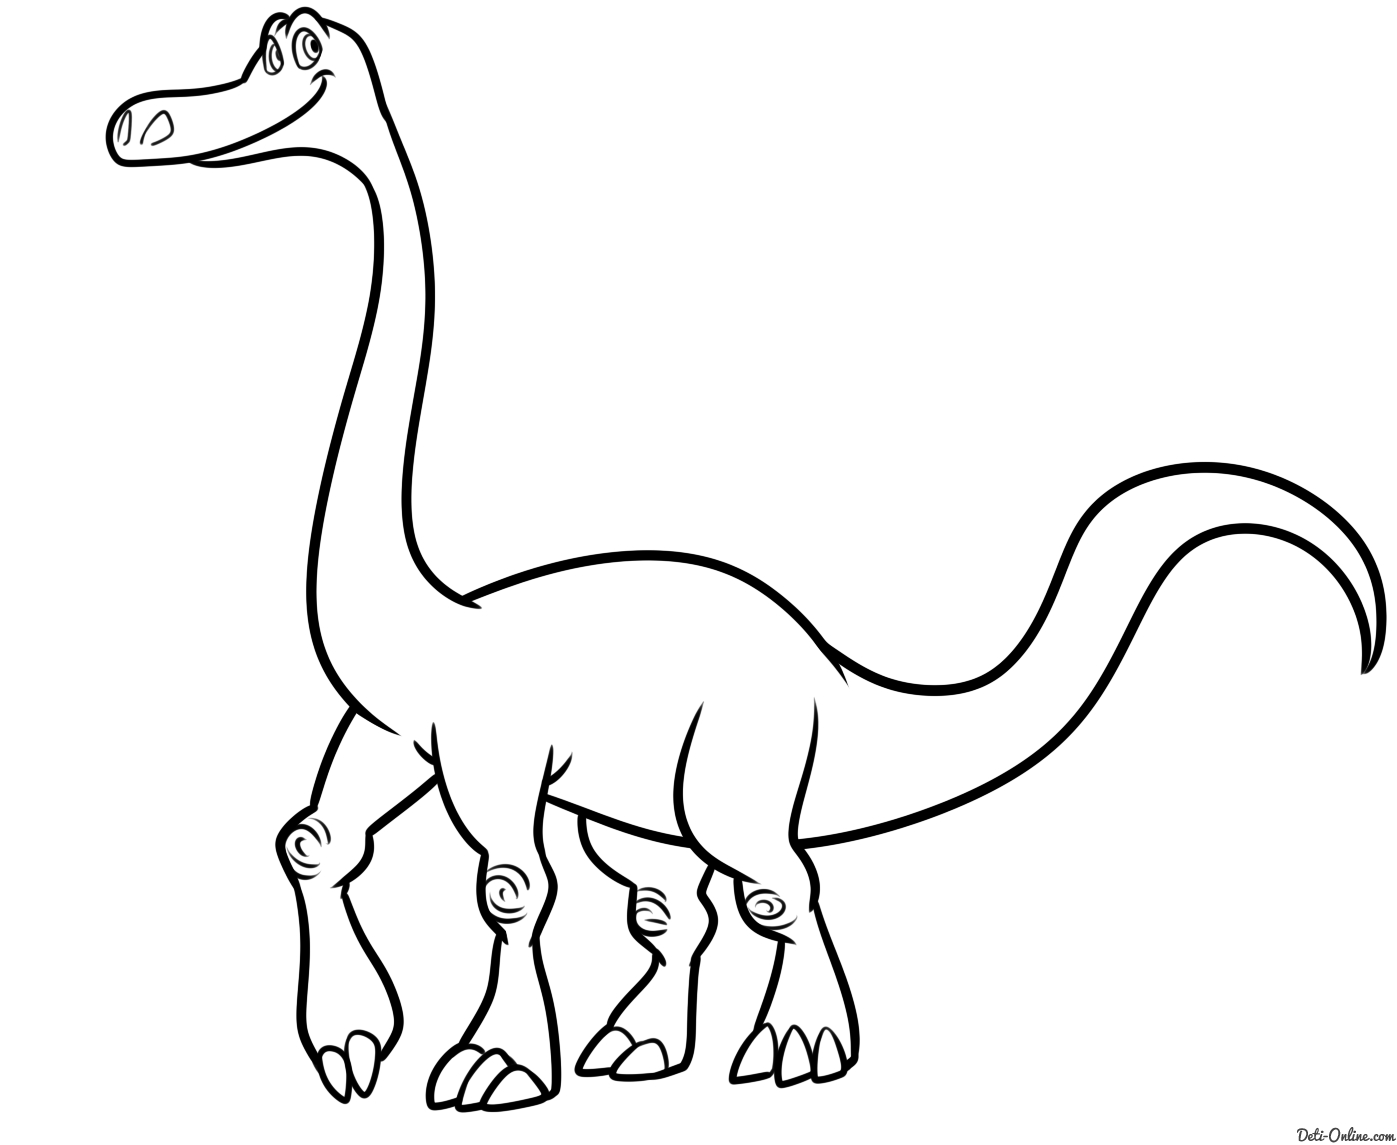 the good dinosaur coloring pages - raskraska